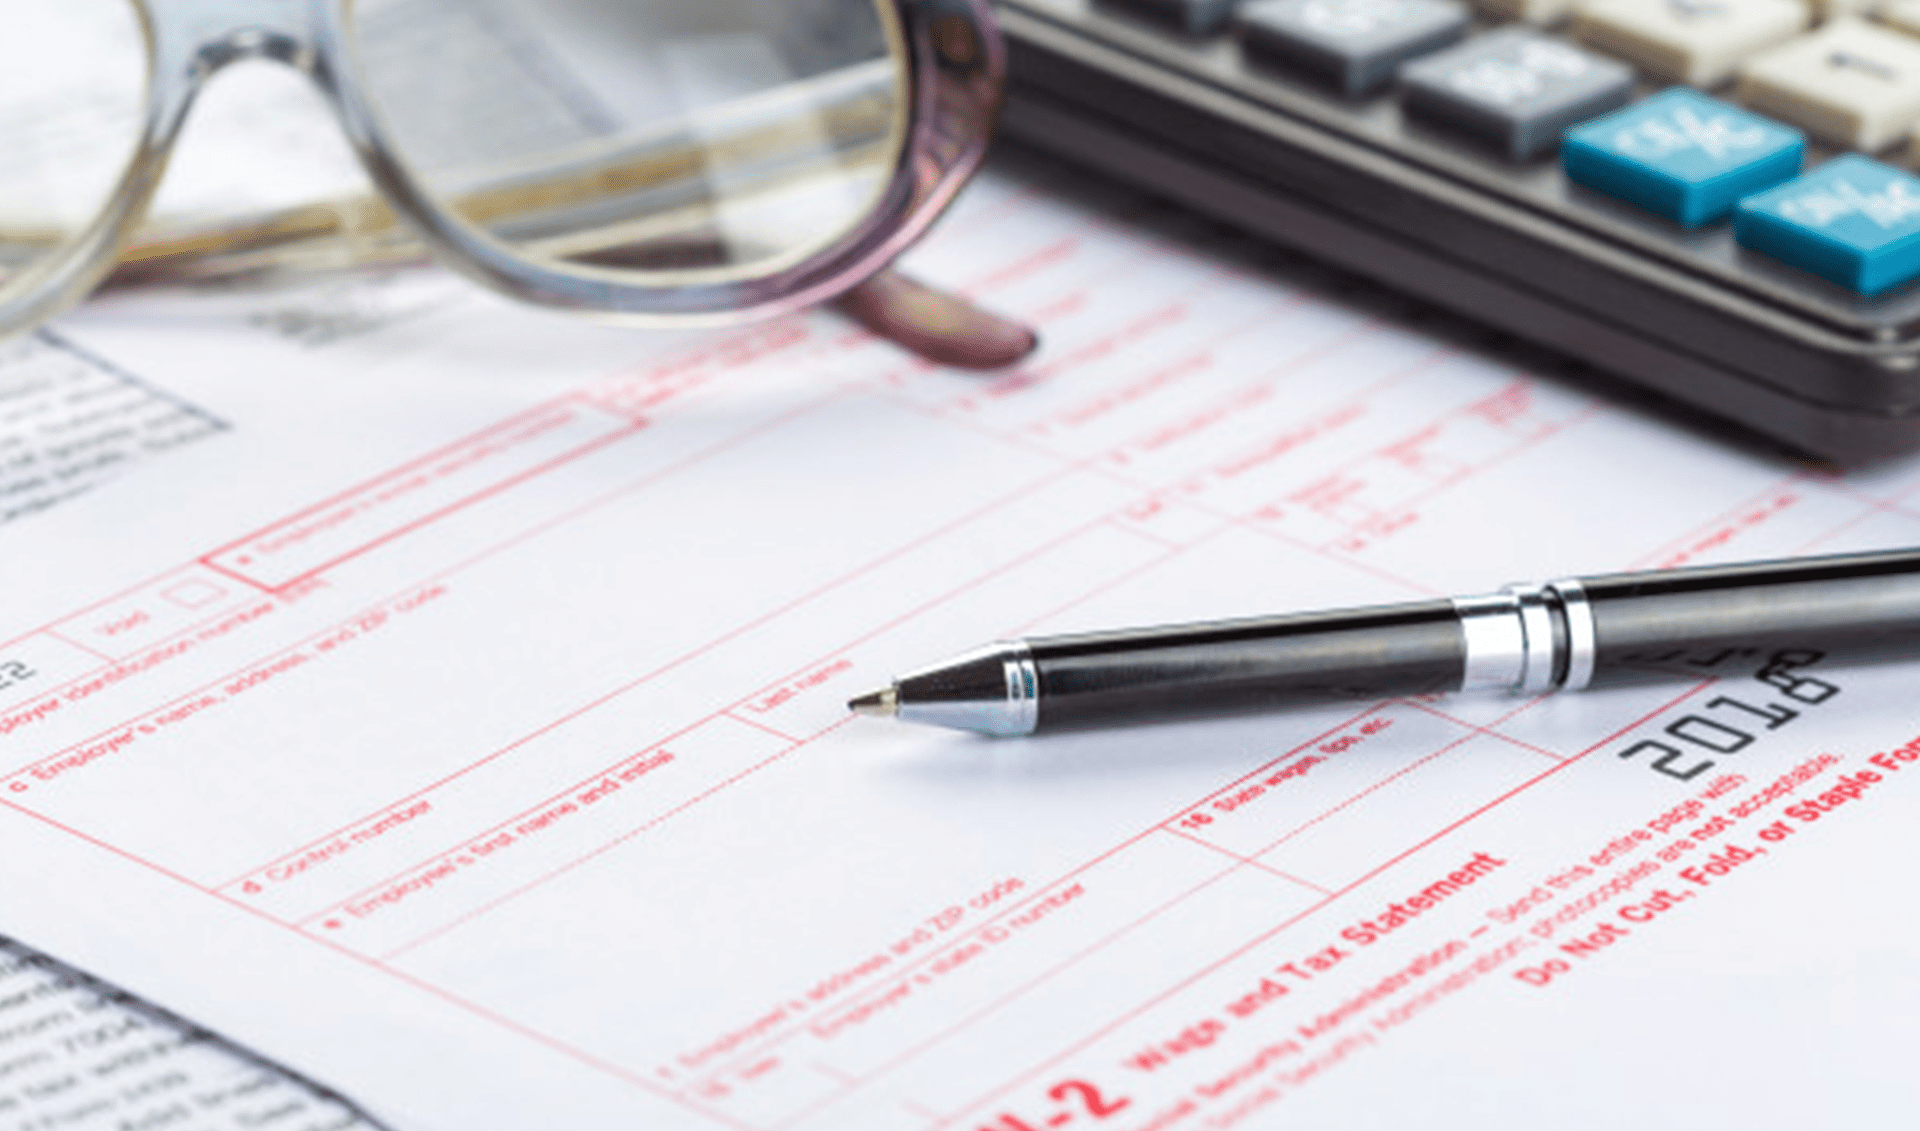 Filing of Annual Returns for your Business in Ghana